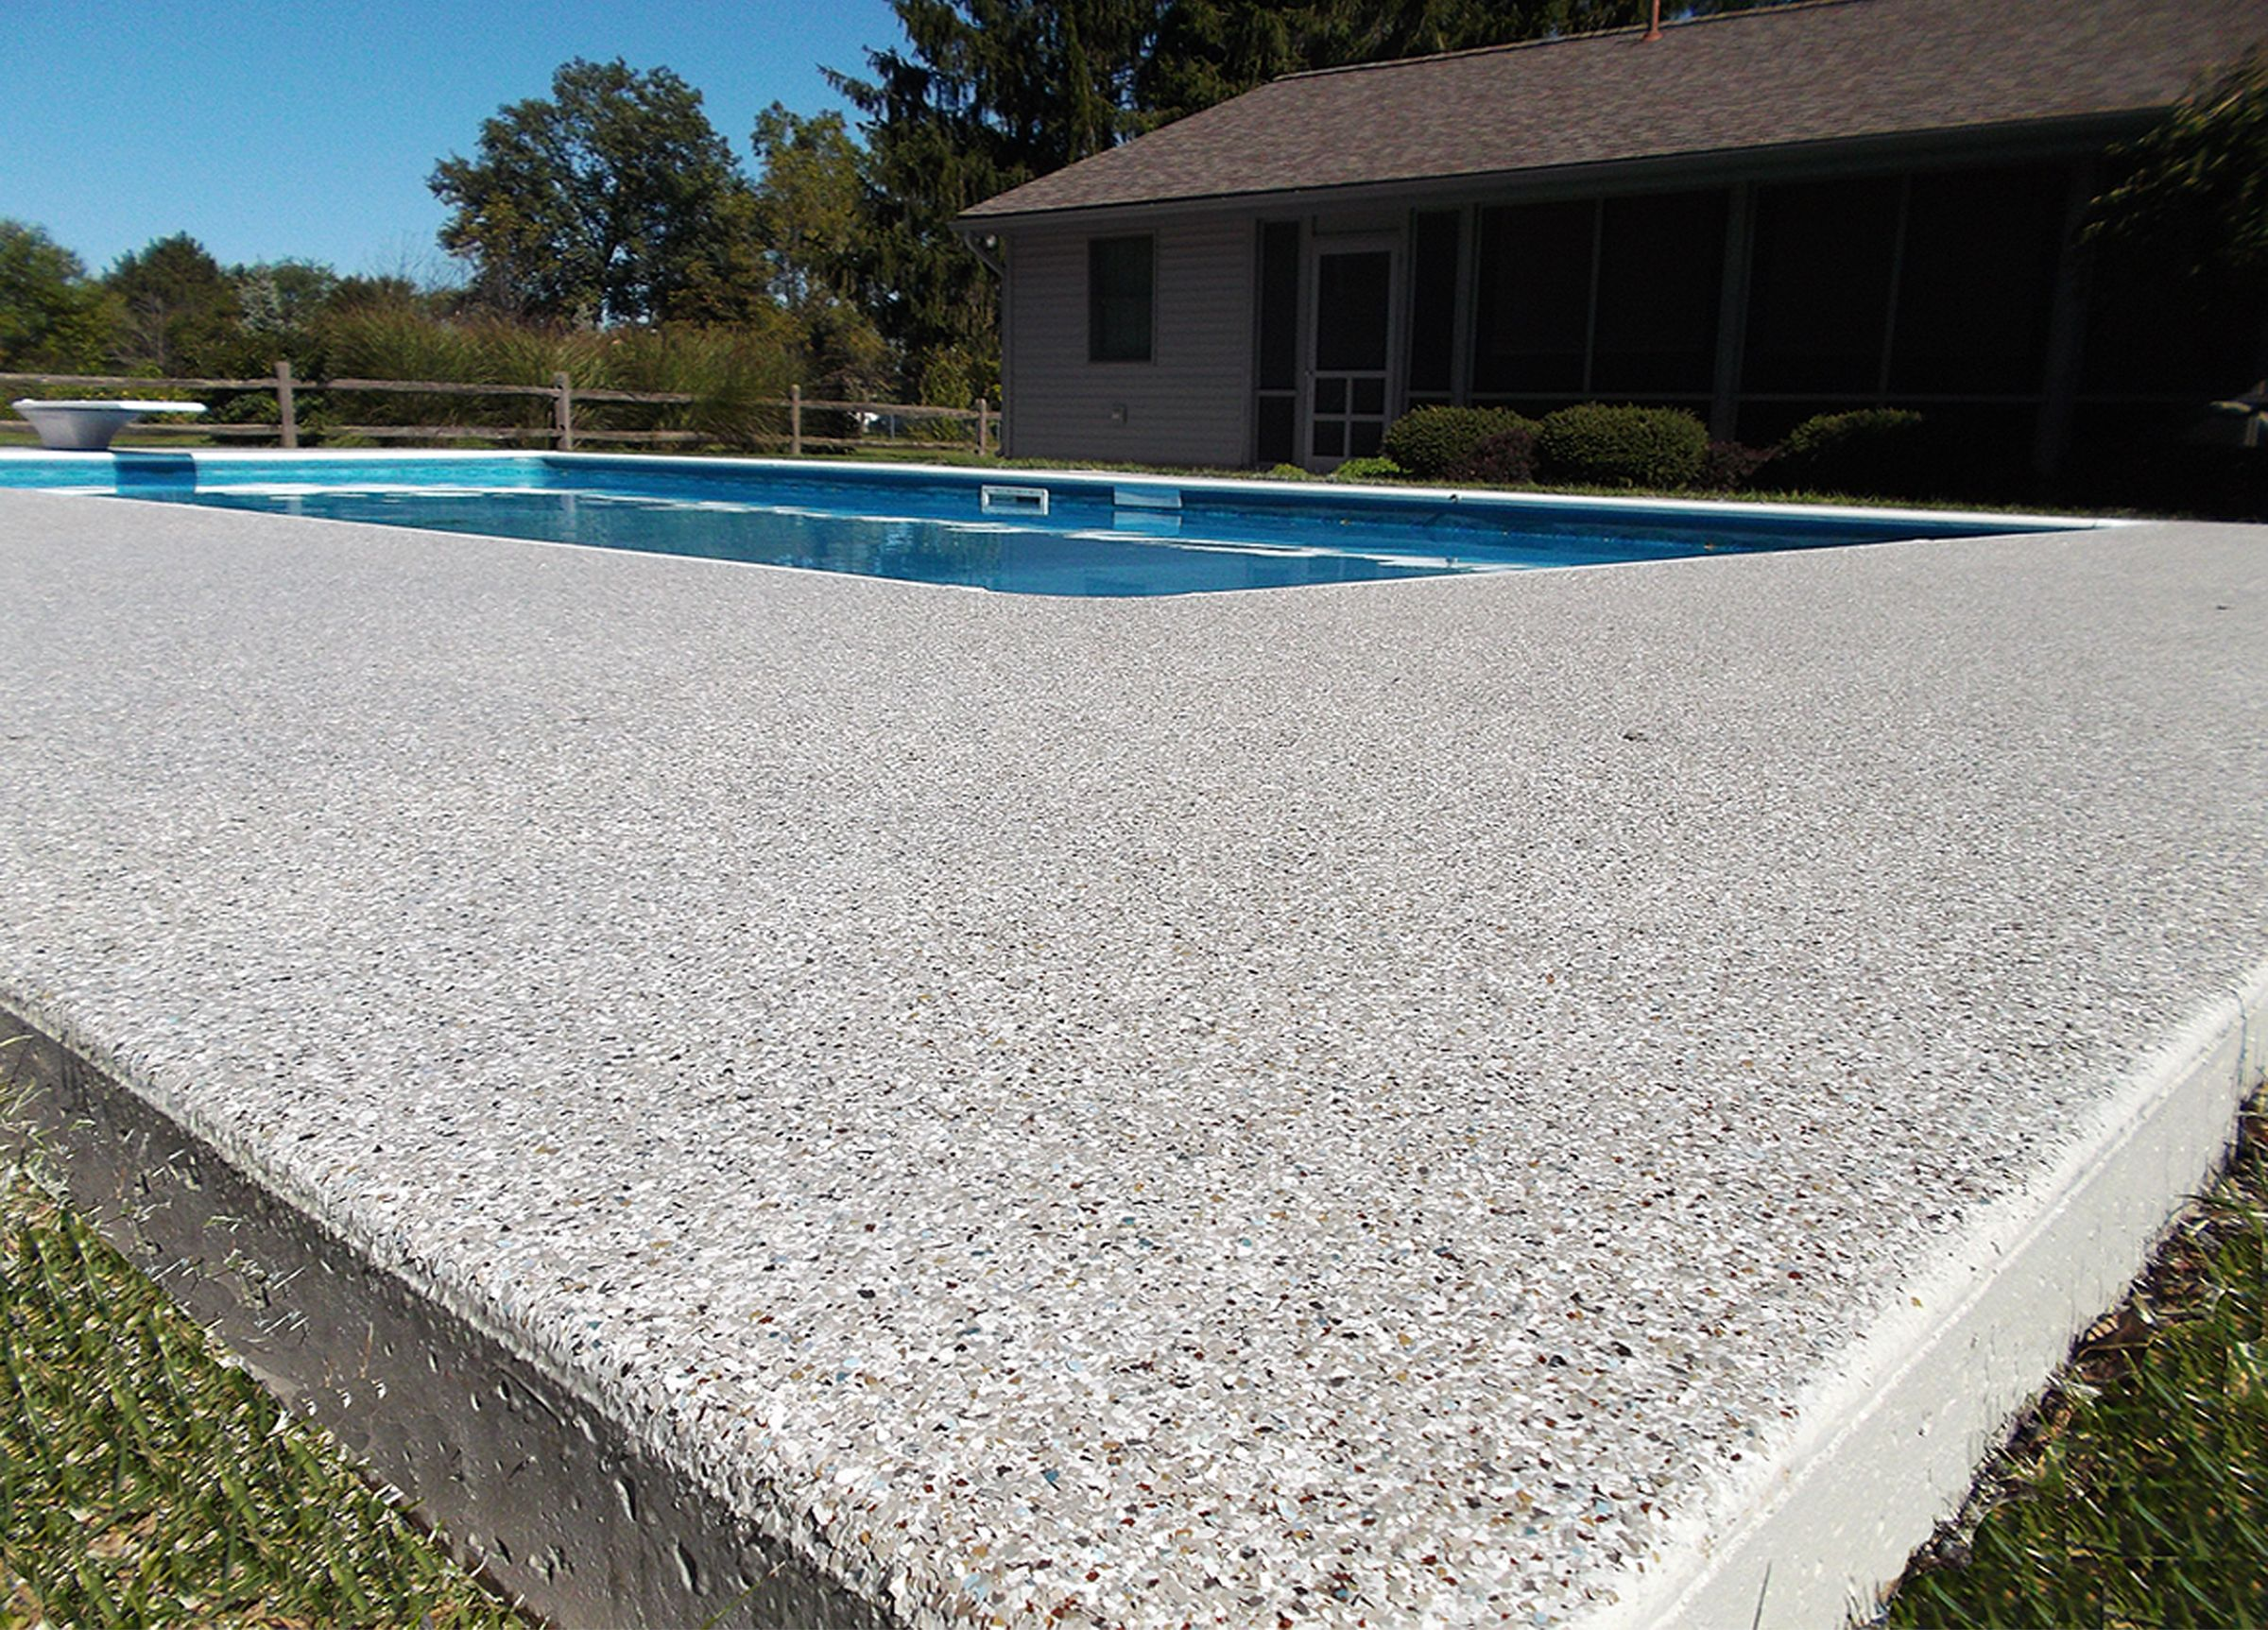 Pool Deck Overlay That Will Repair Cracks And Prevent Them From